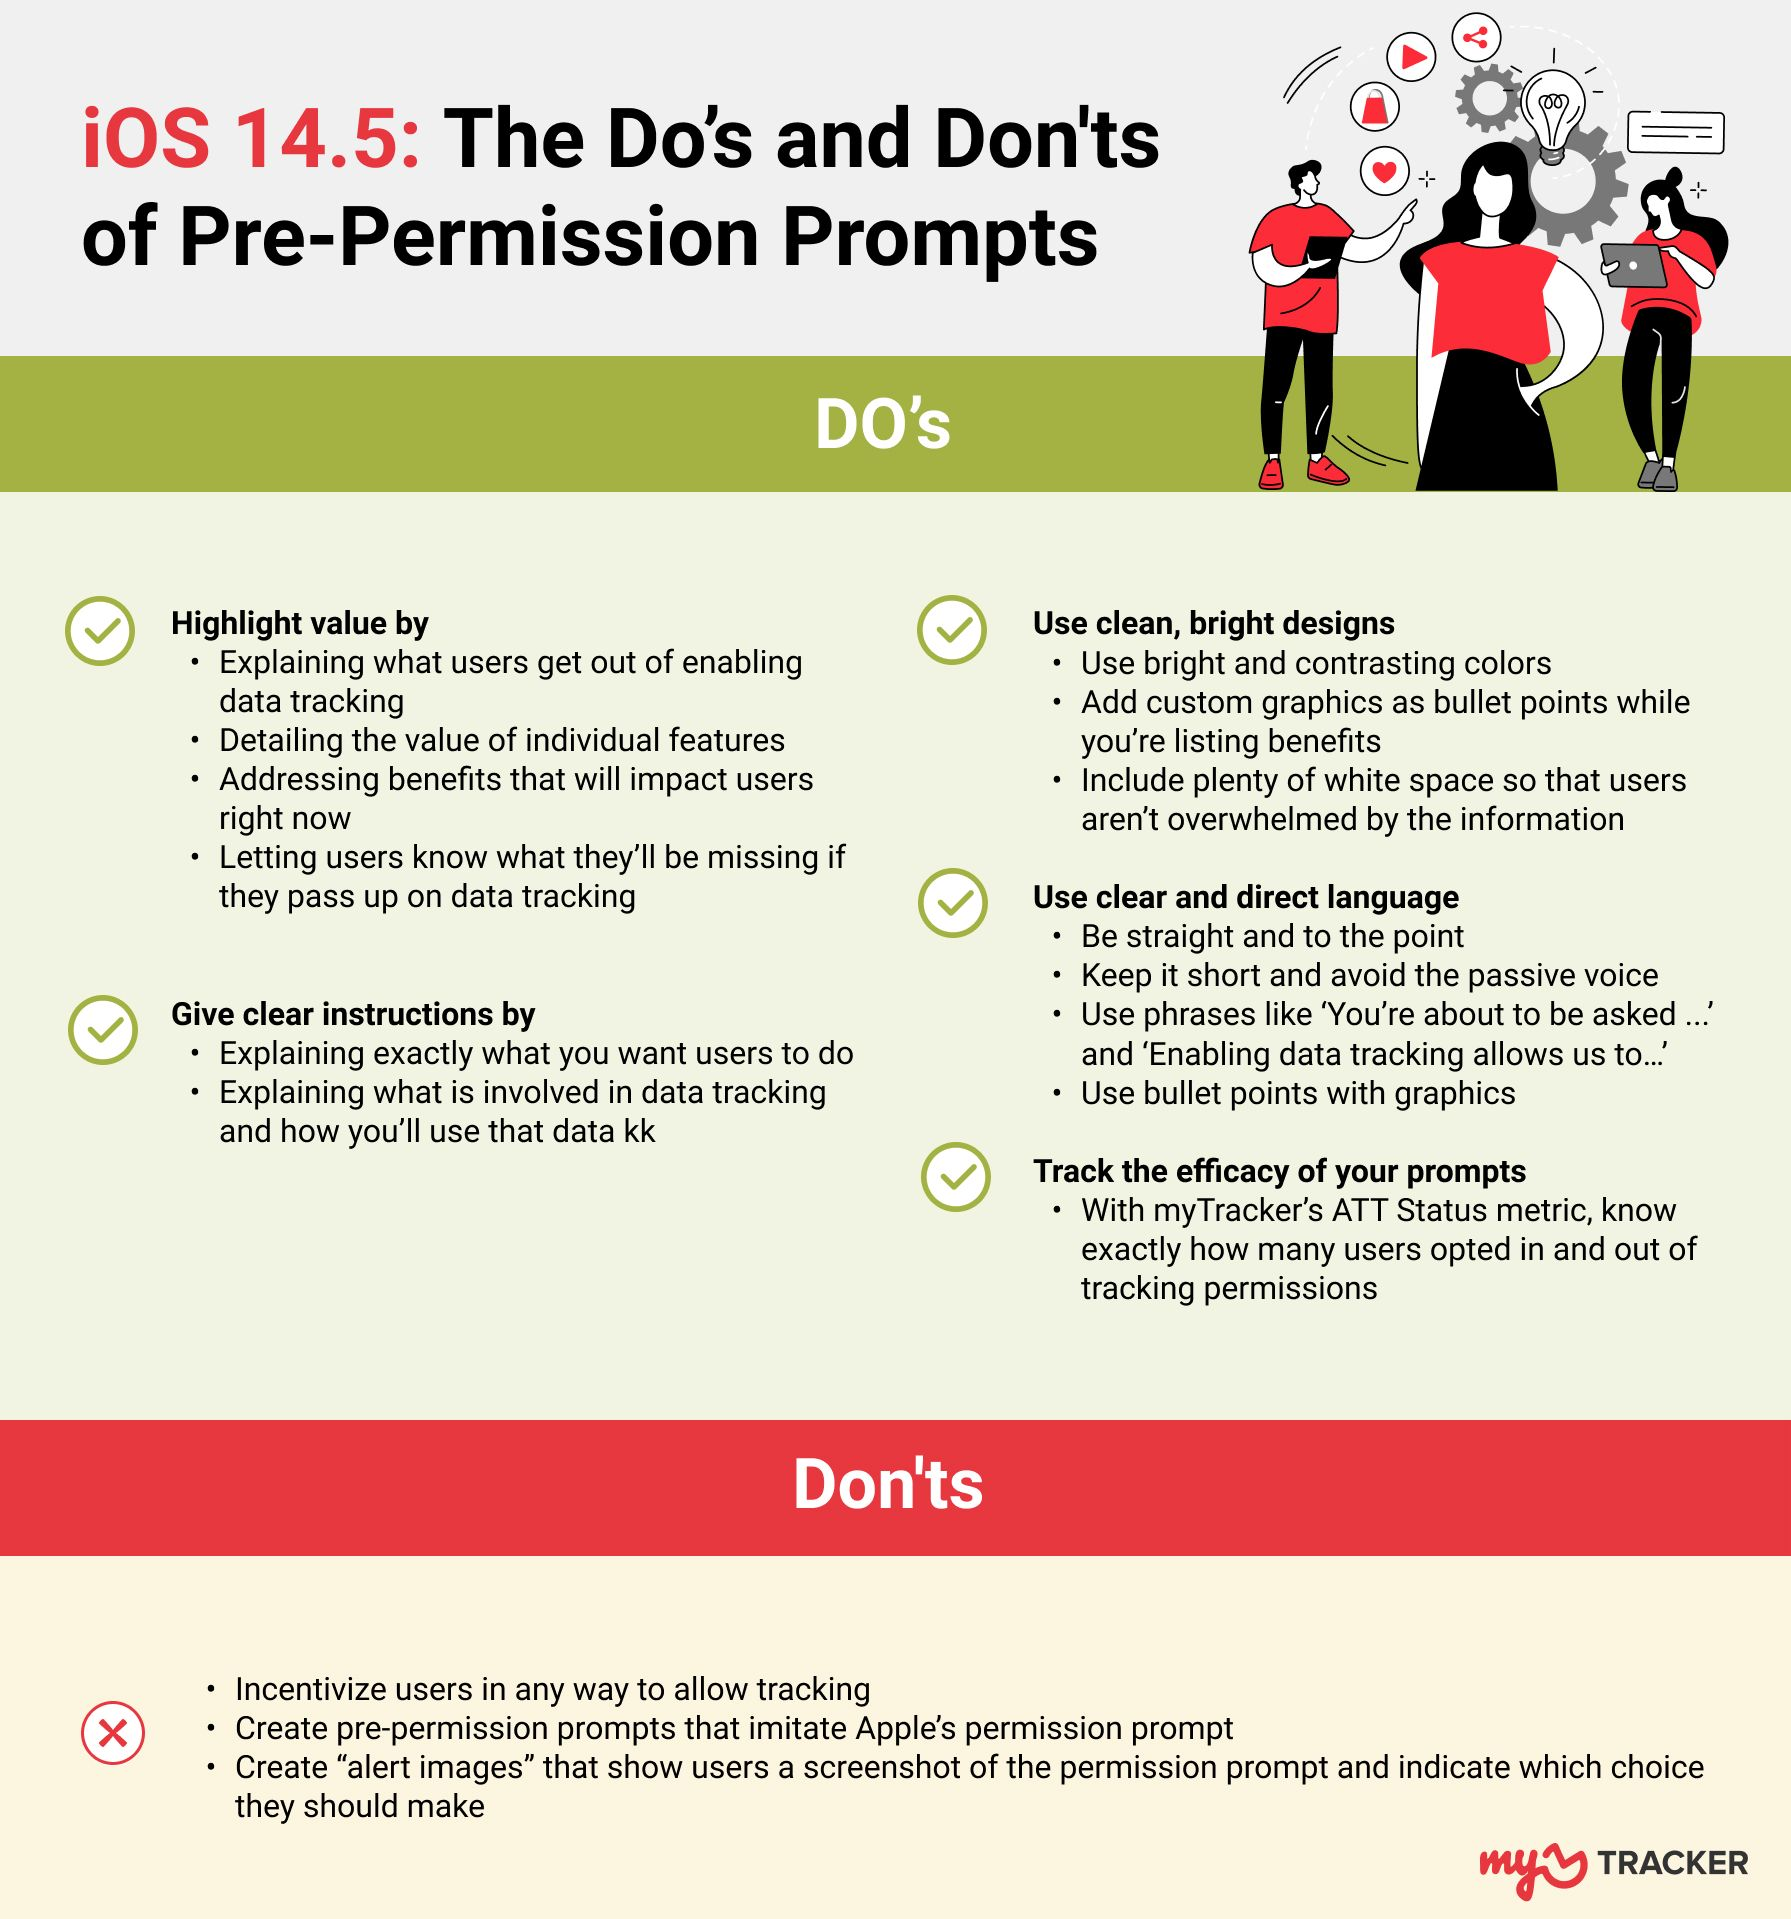 the do's and don'ts of pre-permission prompts